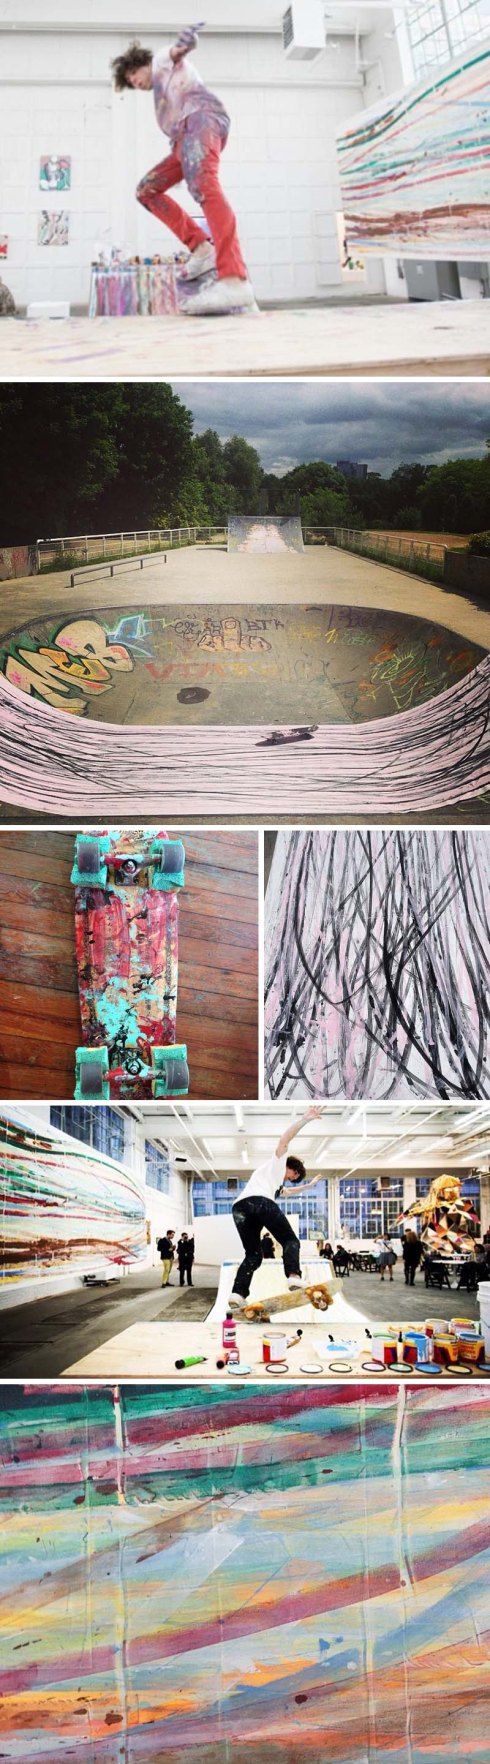 Skateboard Painting, matt reilly, japanther, Mana Contemporary, performance art, abstract painting, cool art